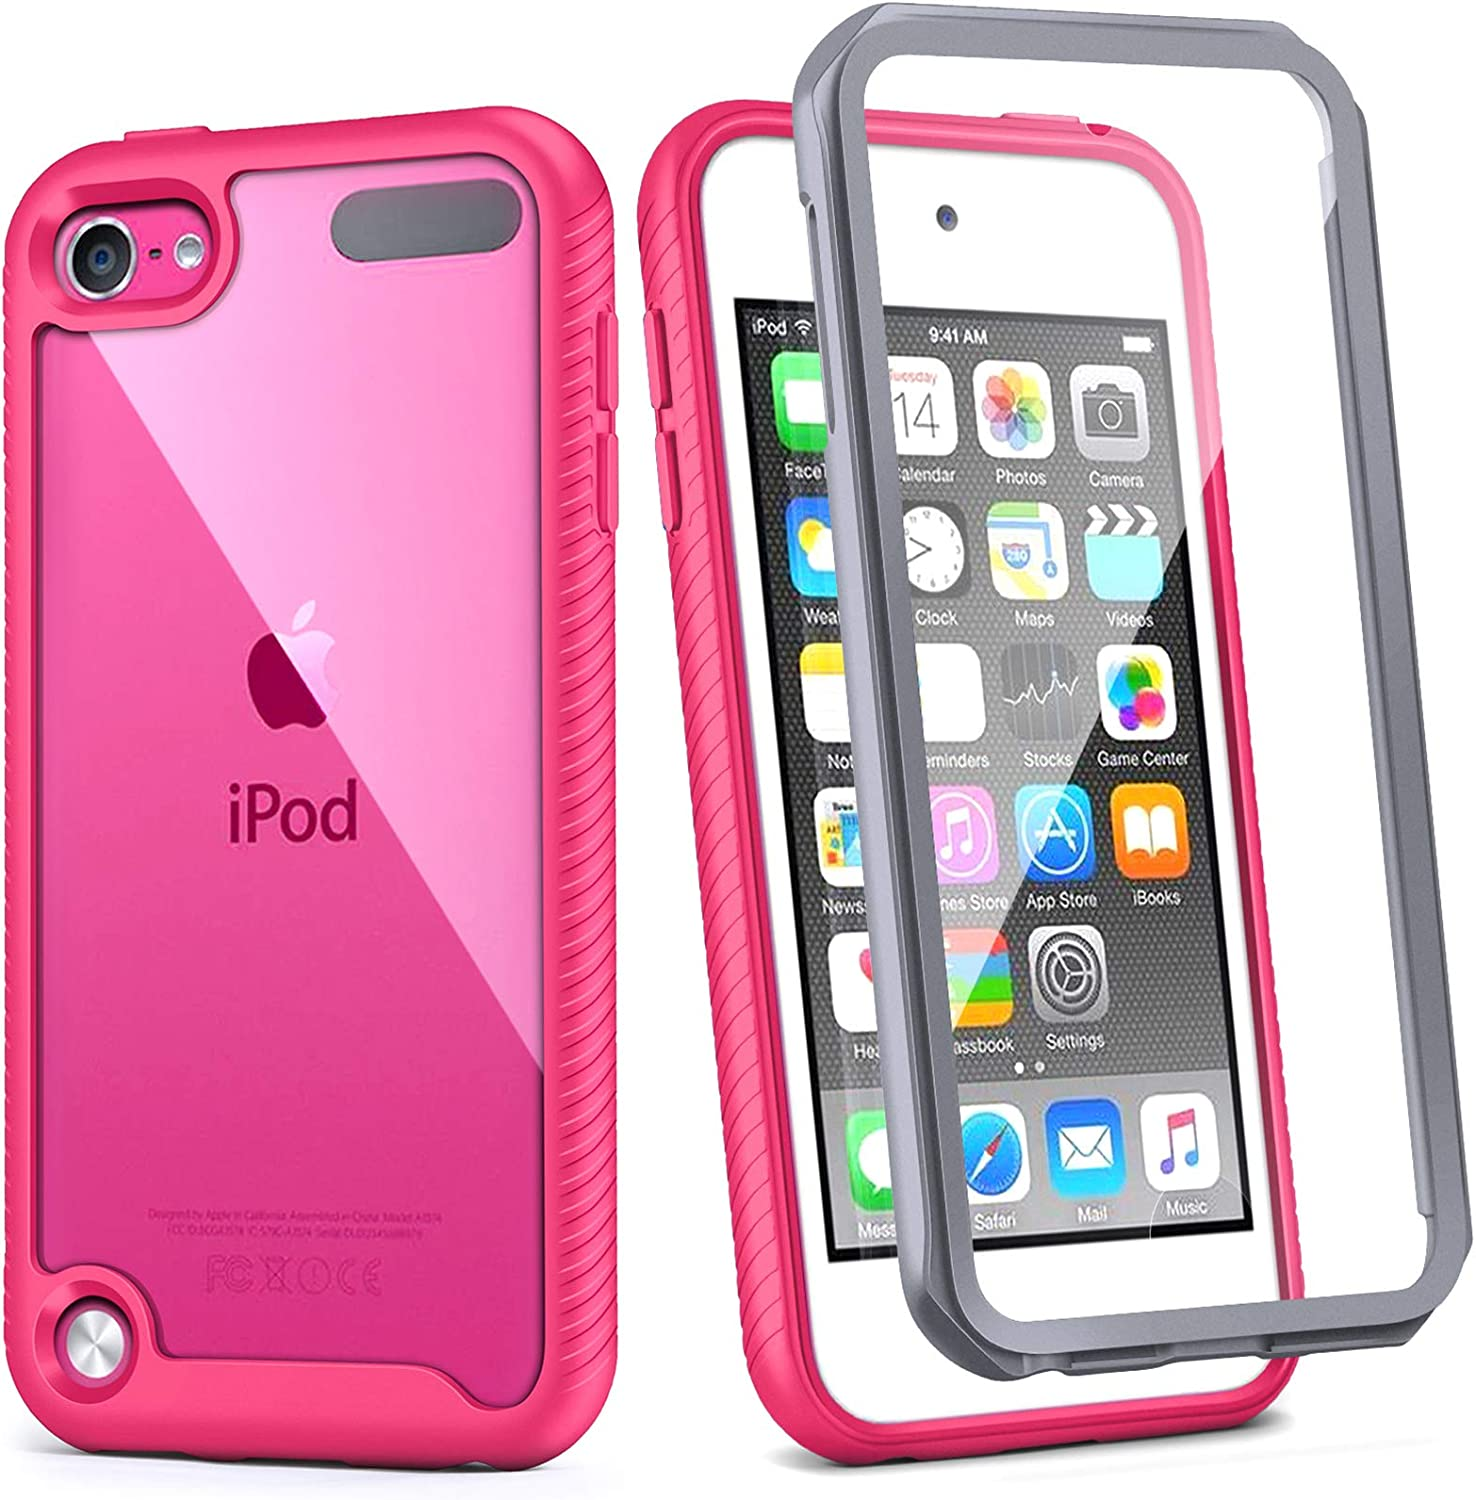 iPod Touch 7th Generation Case, IDweel Armor Shockproof Case Build in Screen Protector Heavy Duty Full Protection Shock Resistant Hybrid Rugged Cover for Apple iPod Touch 5/6/7th Generation, Rose